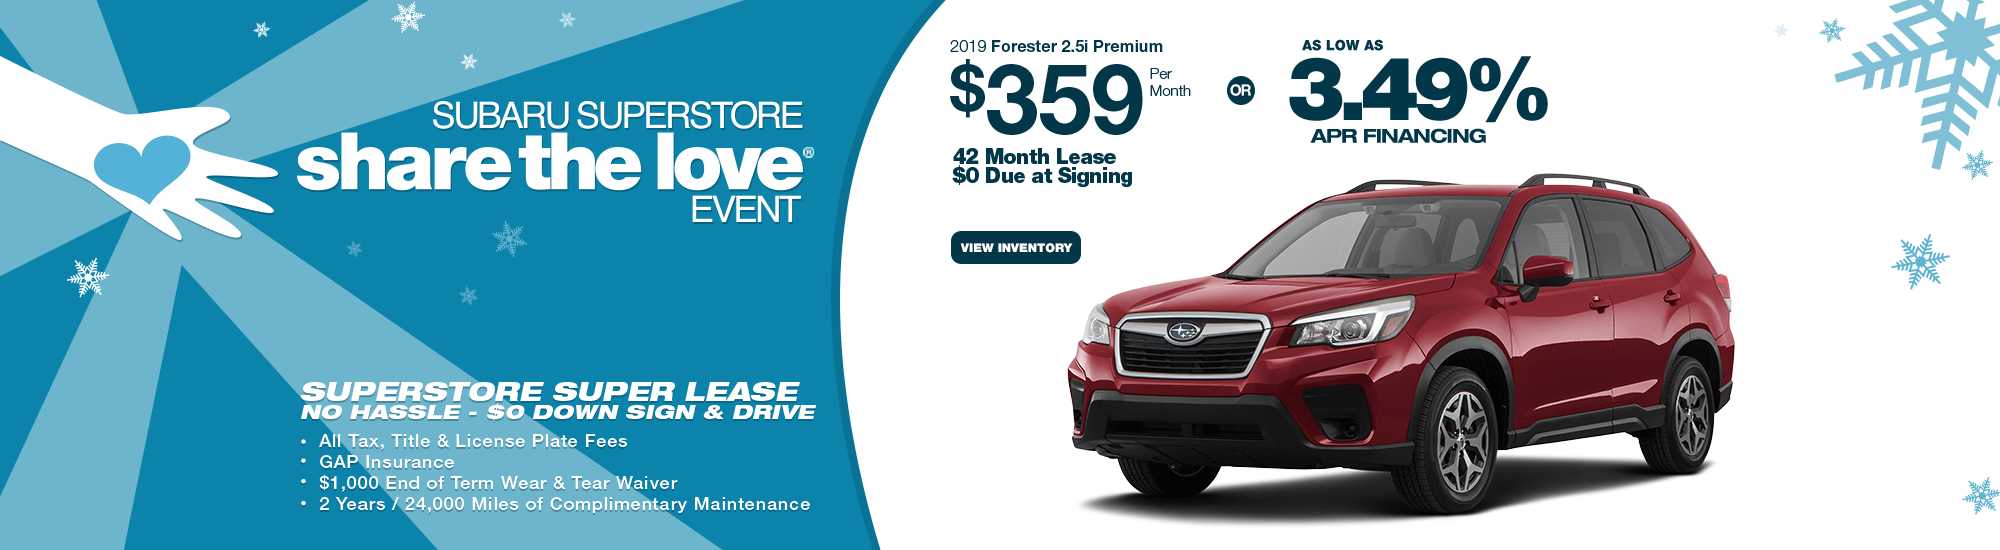 New 2019 Subaru Forester Lease Special & Finance Offers near Phoenix, AZ during our Subaru Superstore Golden Savings Sales Event